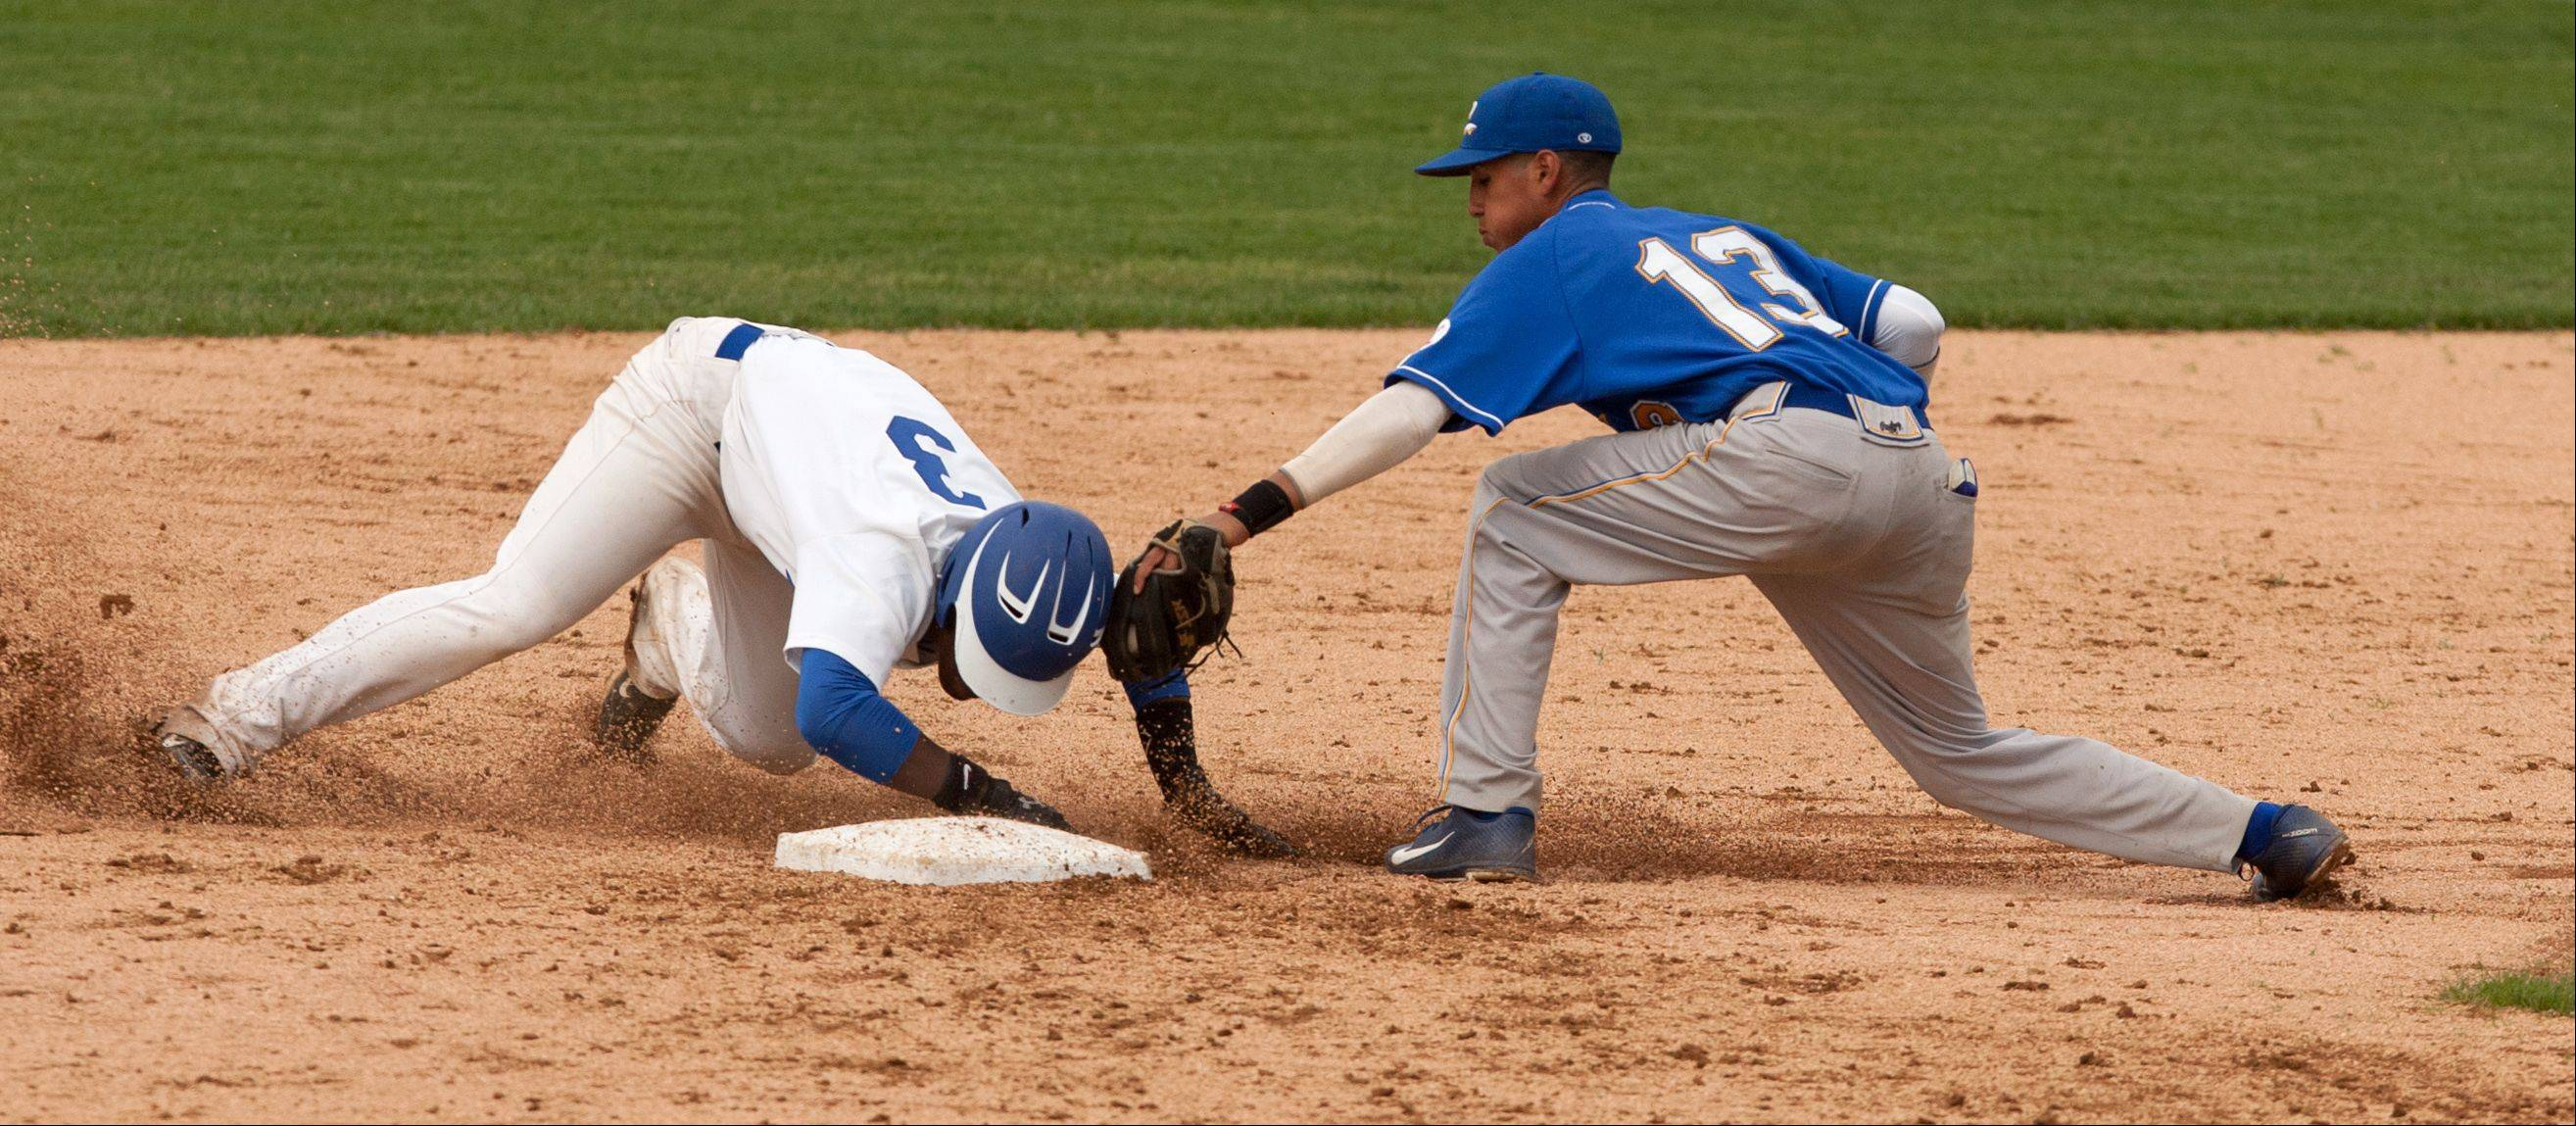 Glenbard South' Zach Smith safely slides around the tag of Clemente's Anthony Justiniano during the Nazareth Class 4A sectional semifinals in LaGrange Park.